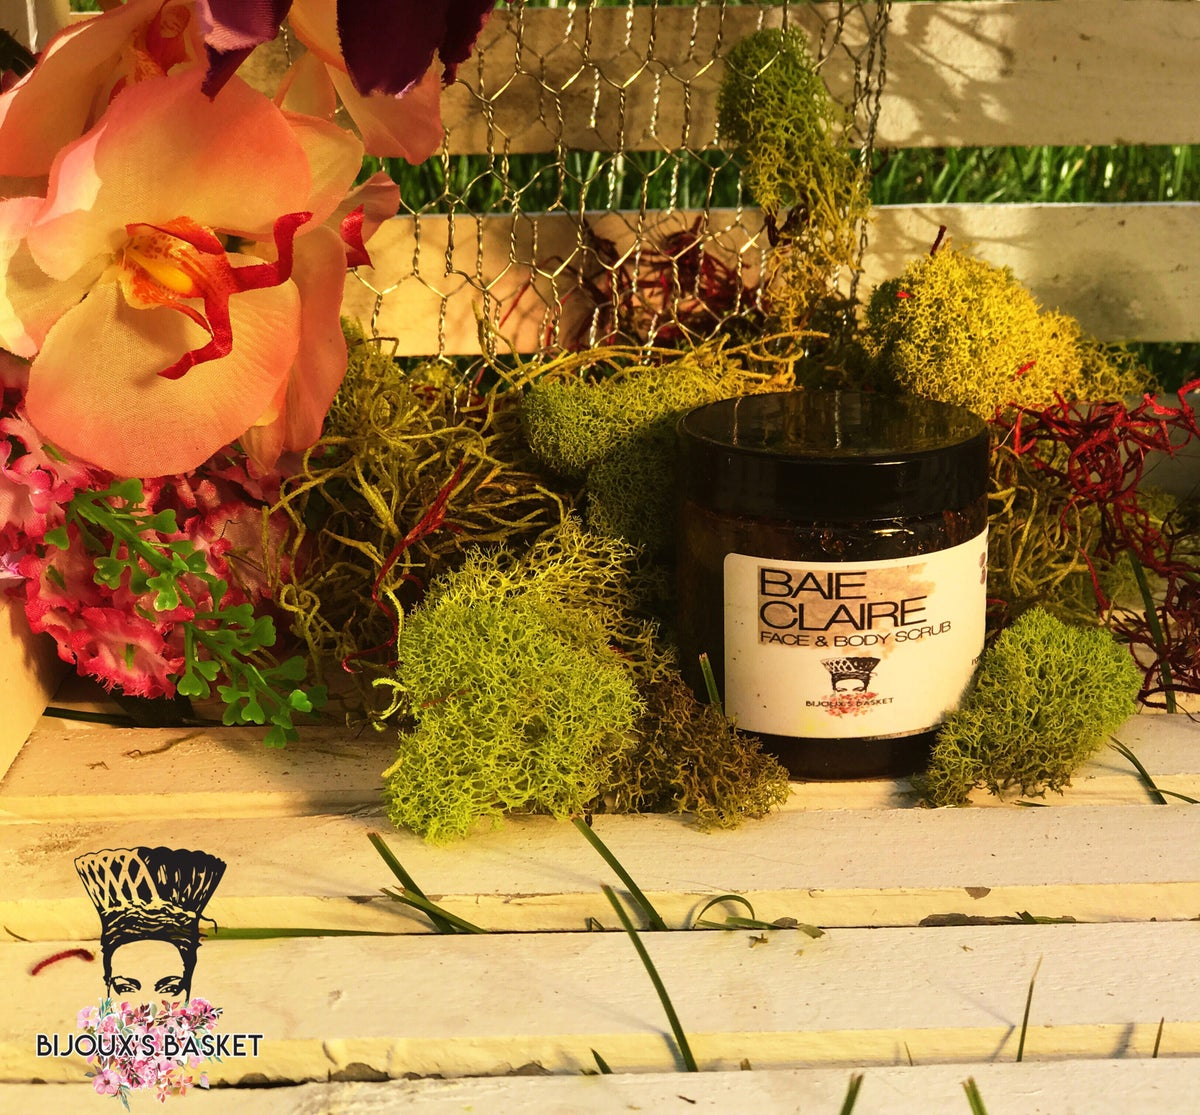 Image of Baie Claire Face & Body Scrub